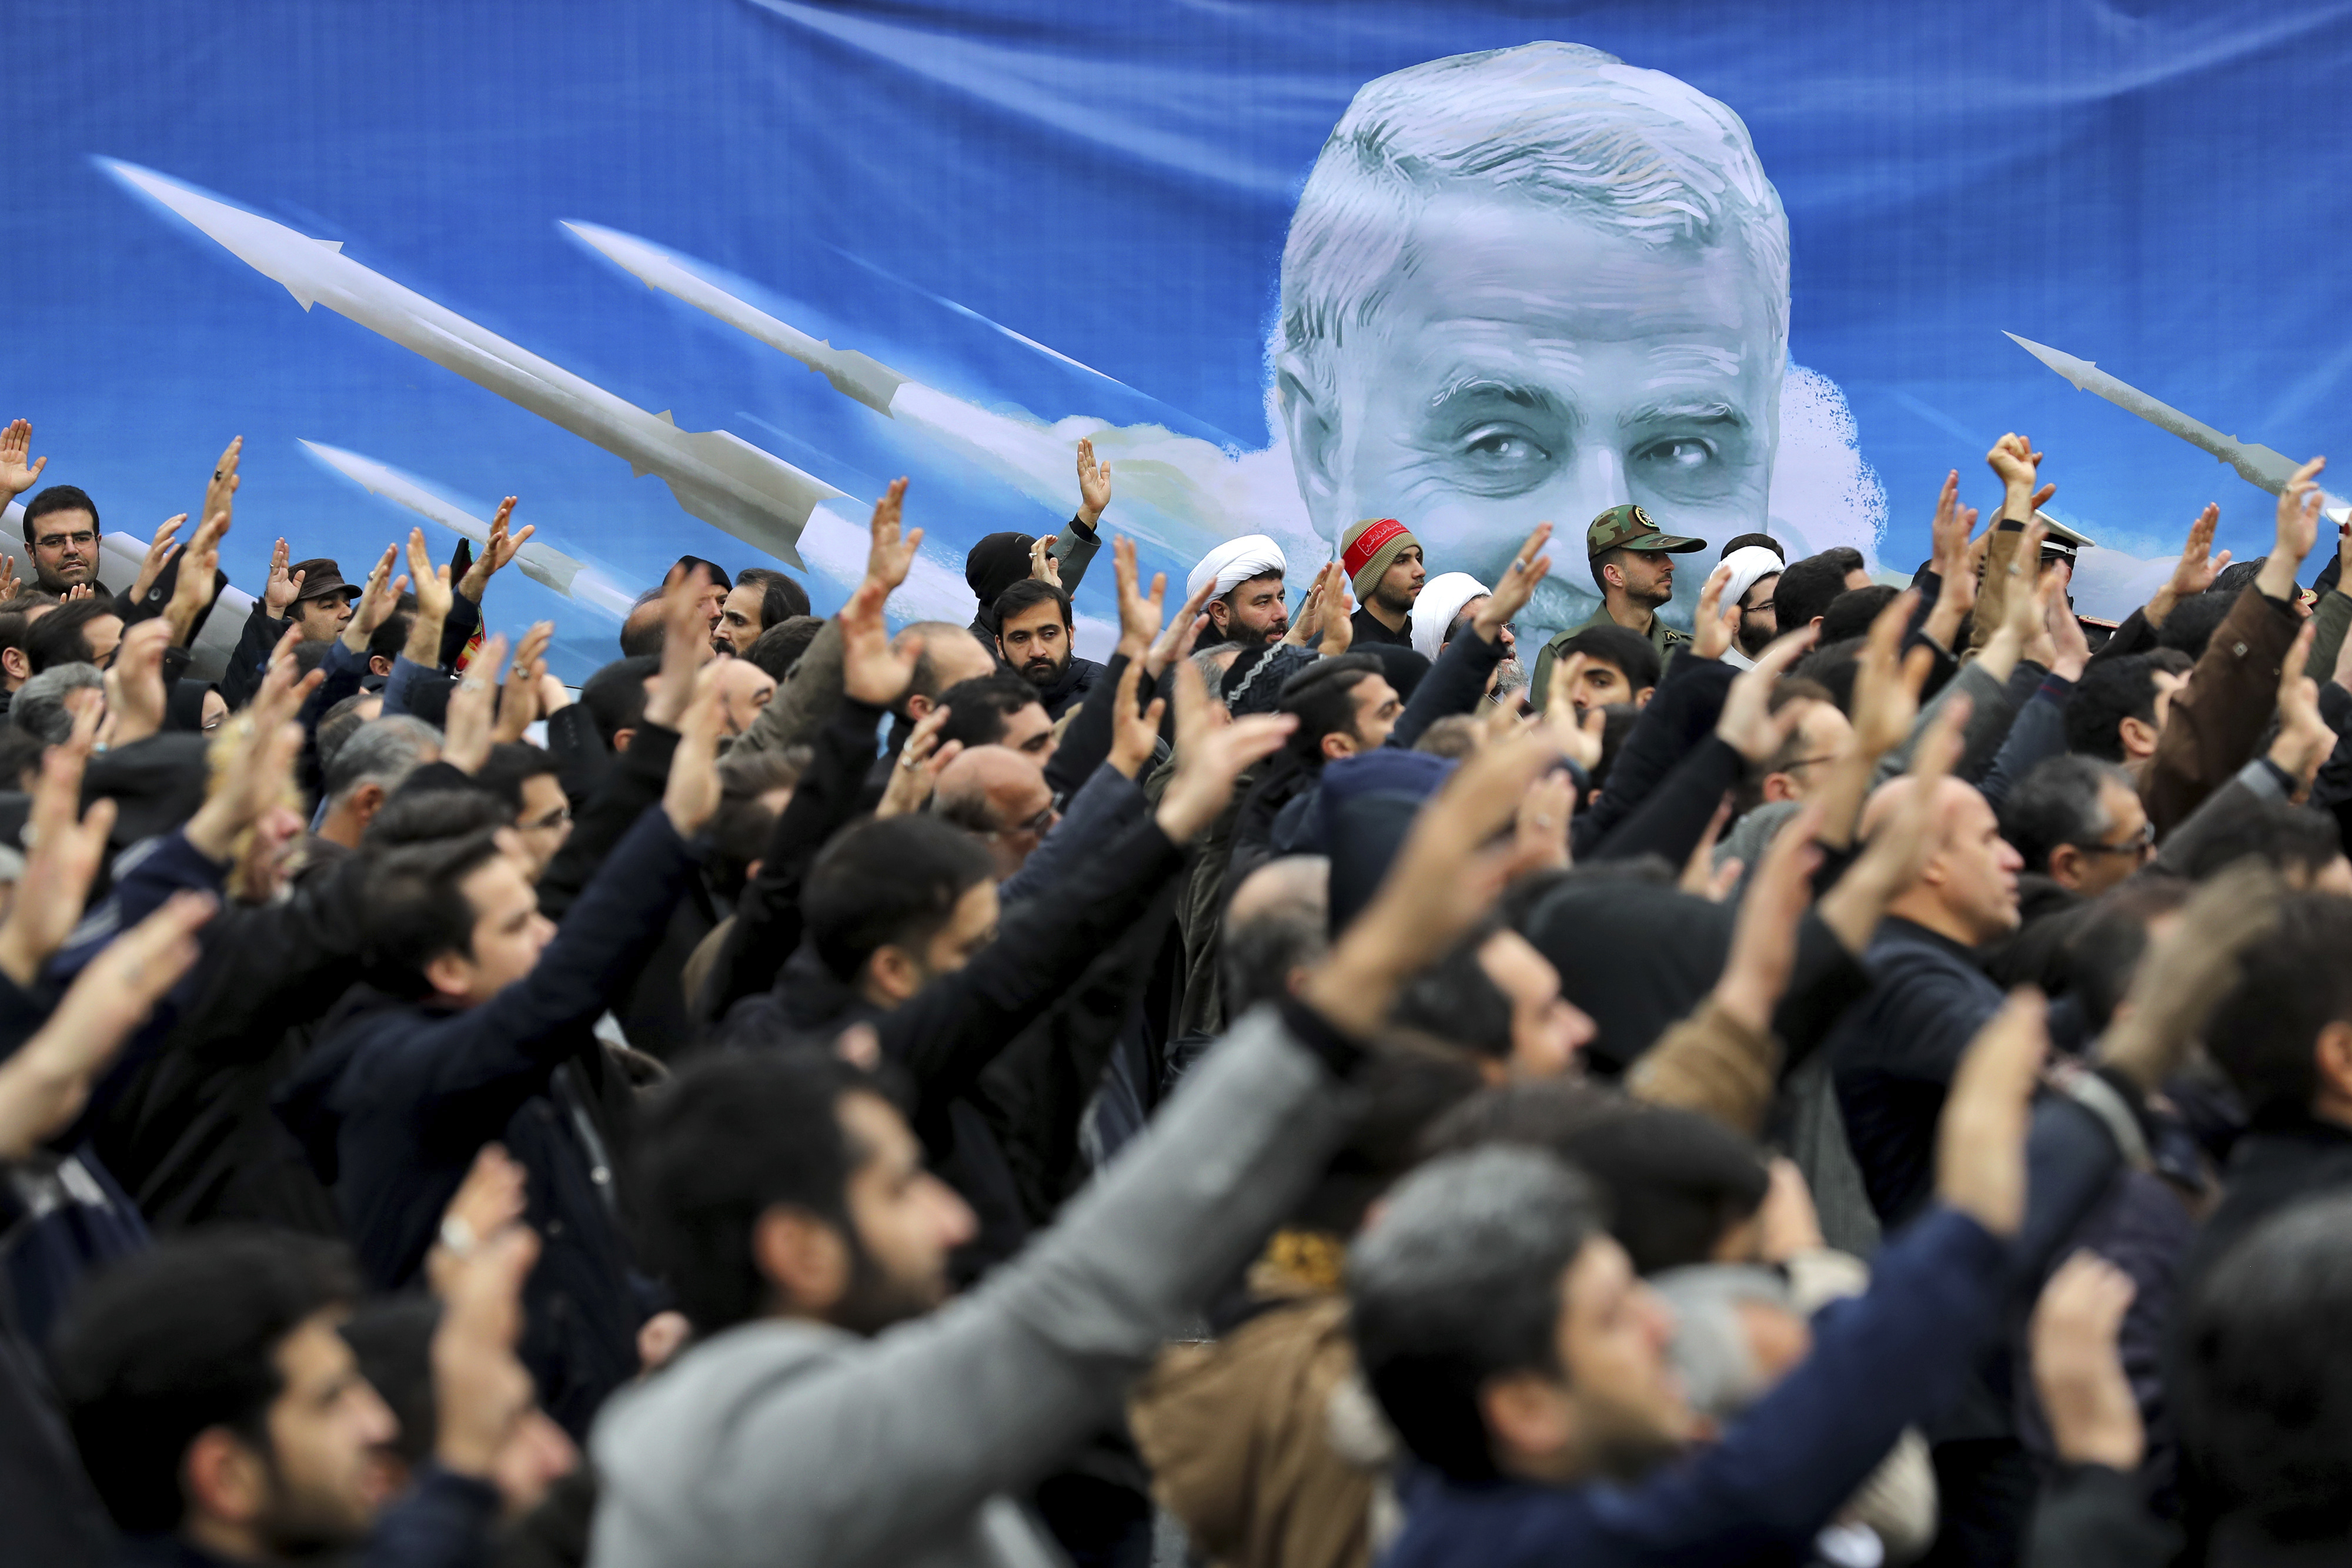 Questions abound for Iranian military in wake of Soleimani killing